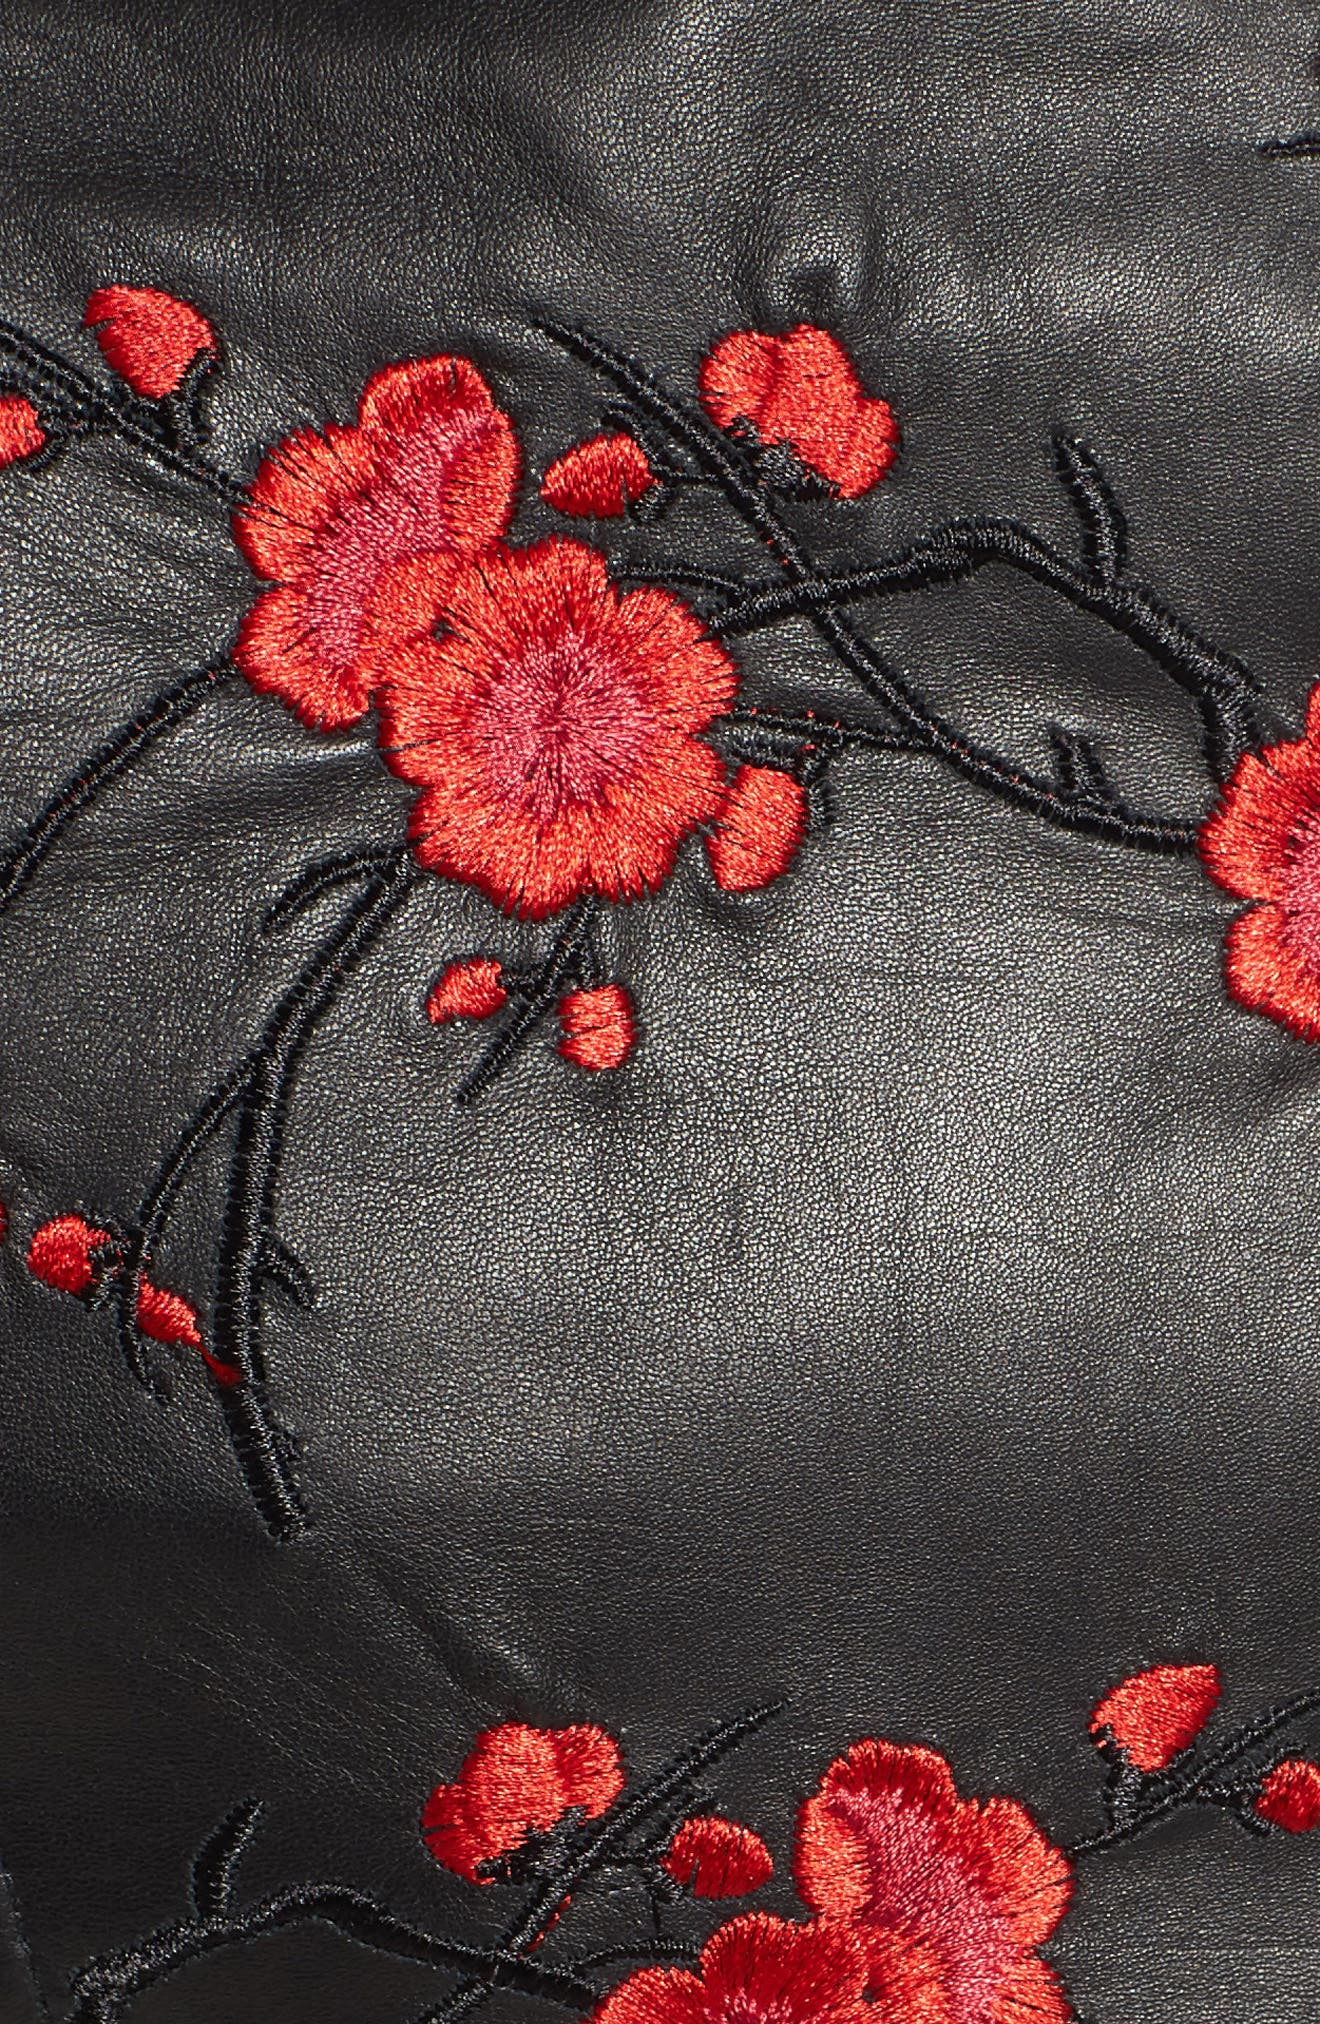 Embroidered Leather Moto Jacket,                             Alternate thumbnail 6, color,                             Black With Red Embroidery